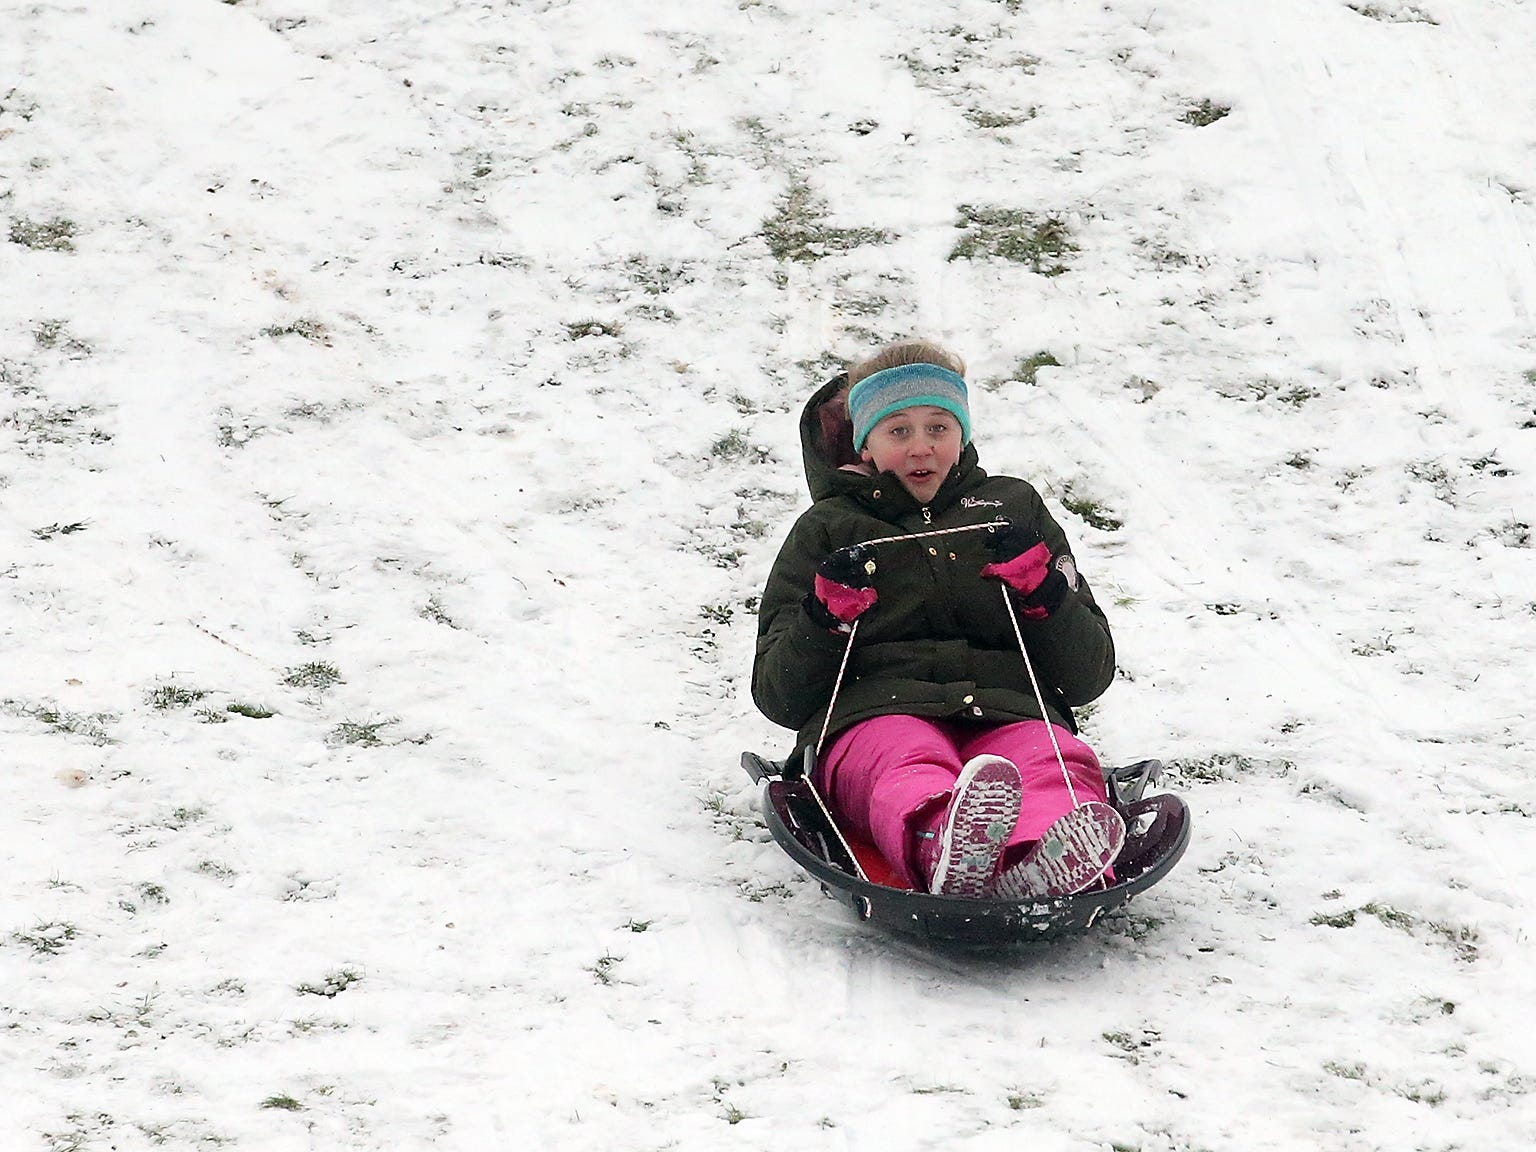 Bailey O'Brien, 11, zips down the hill on her sled at Silver Ridge Elementary School in Silverdale on Monday, February 4, 2019.